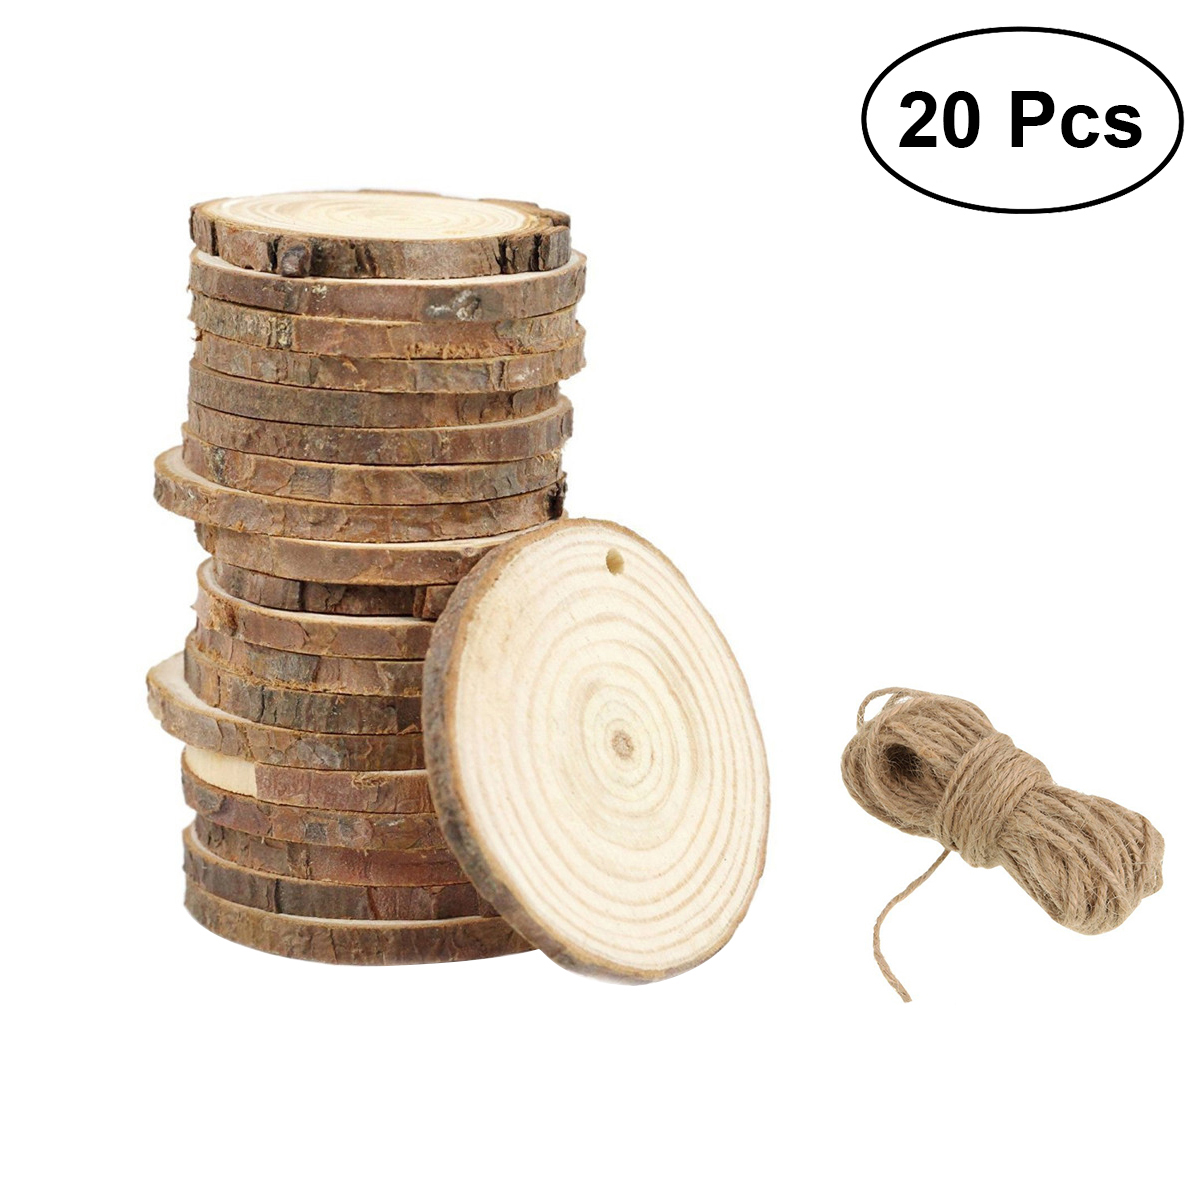 20pcs Wood Log Slices Discs Round Wooden Slices Circles For DIY ...